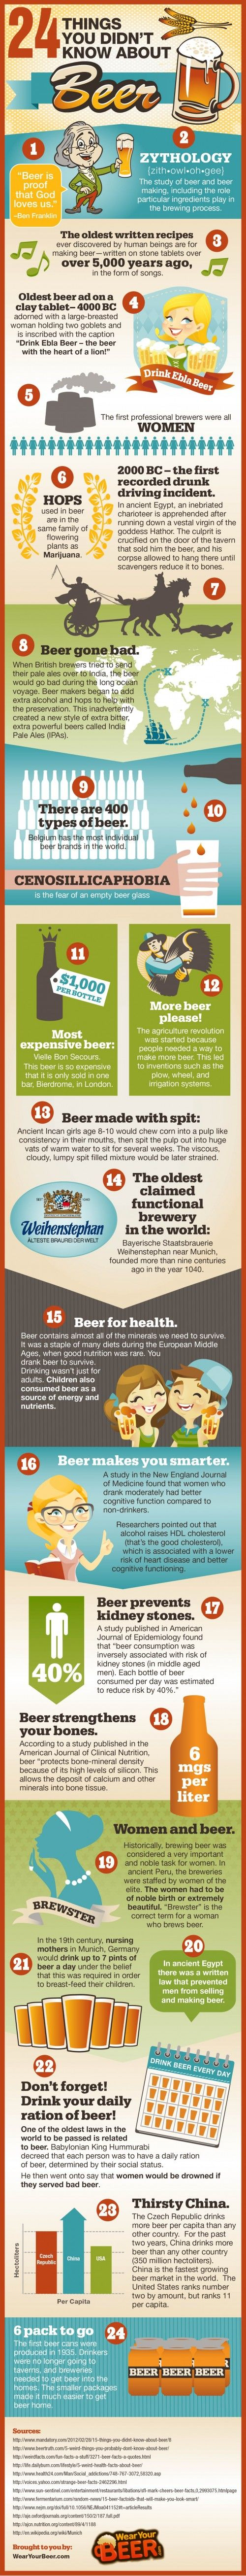 24 Things You Didn't Know About Beer – Infographic on http://